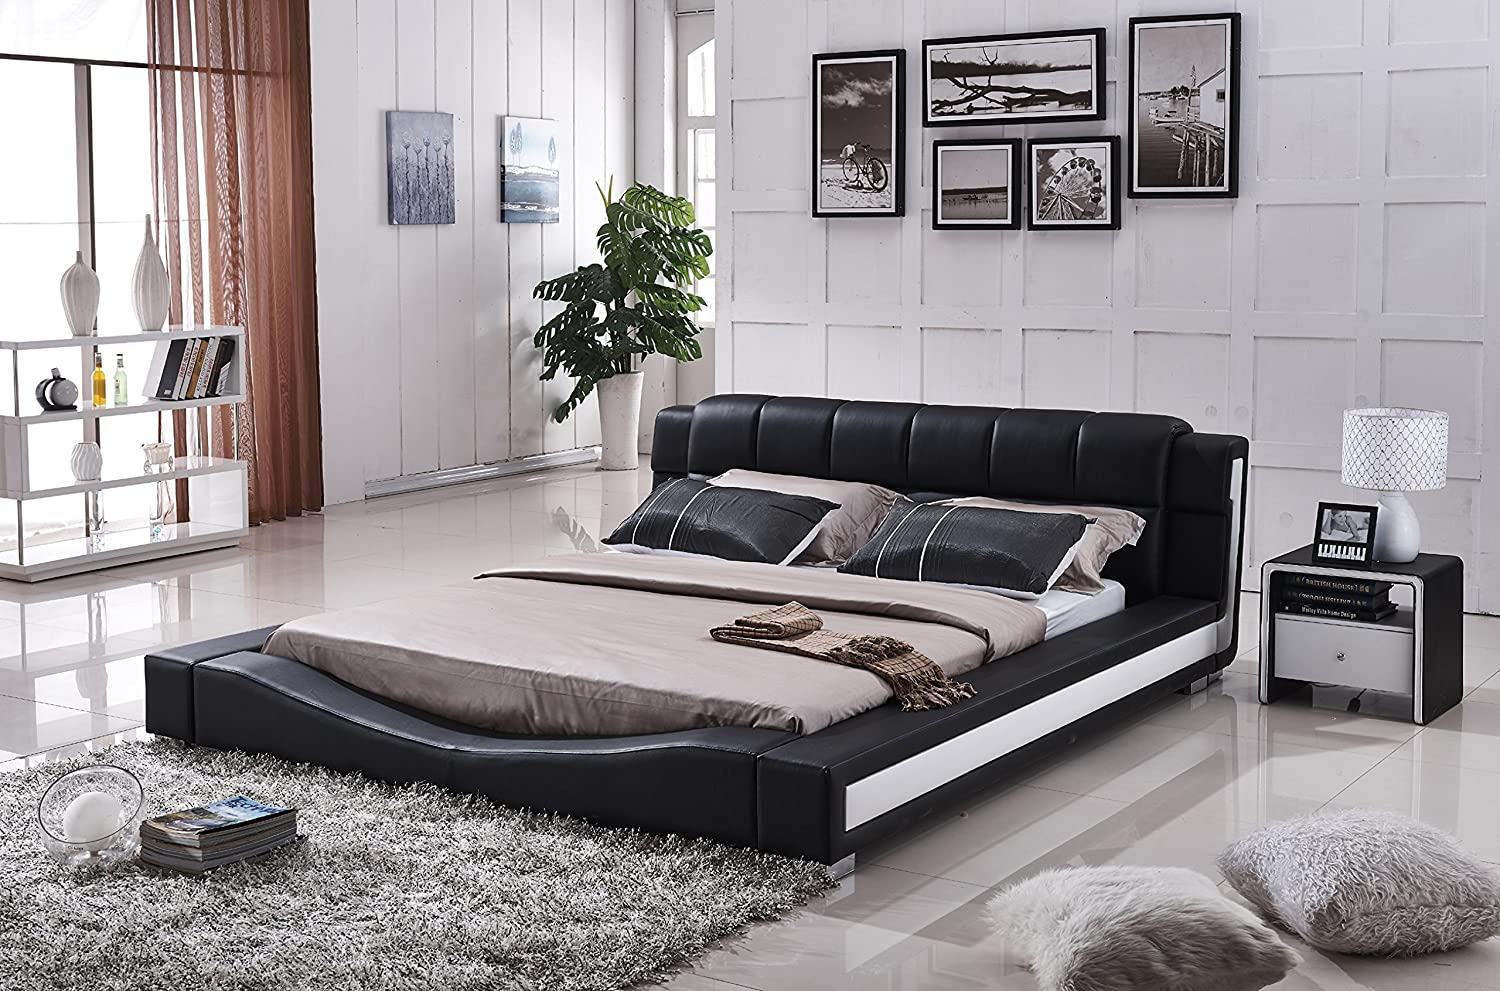 Platform Bed with Padded Headboard, Black/White